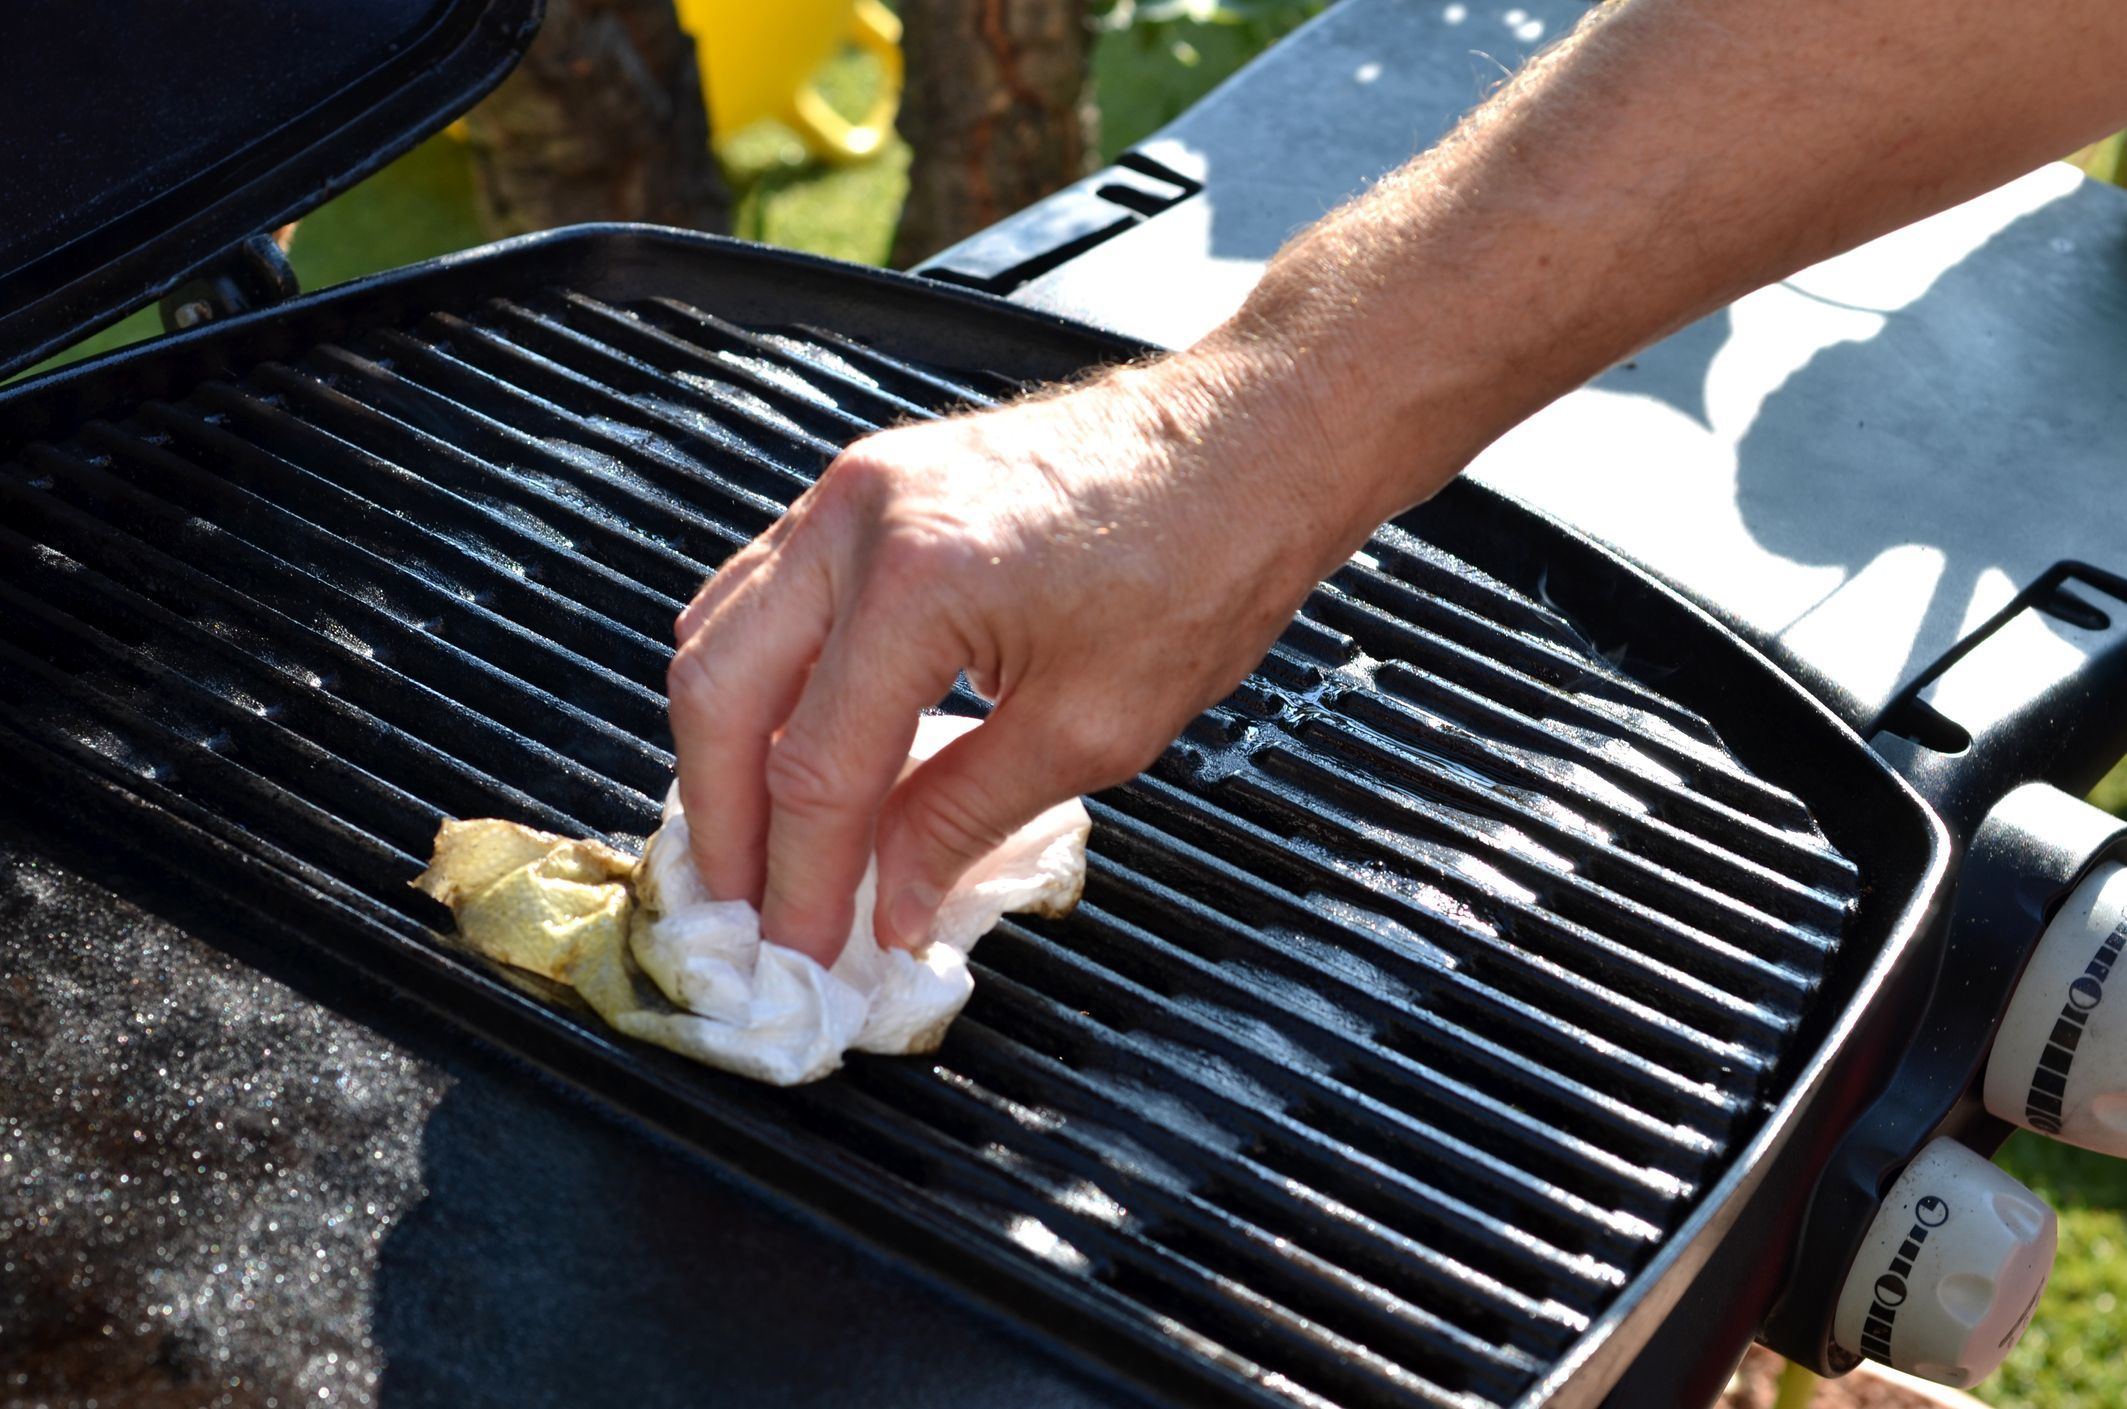 Clean Out the Charcoal Grill